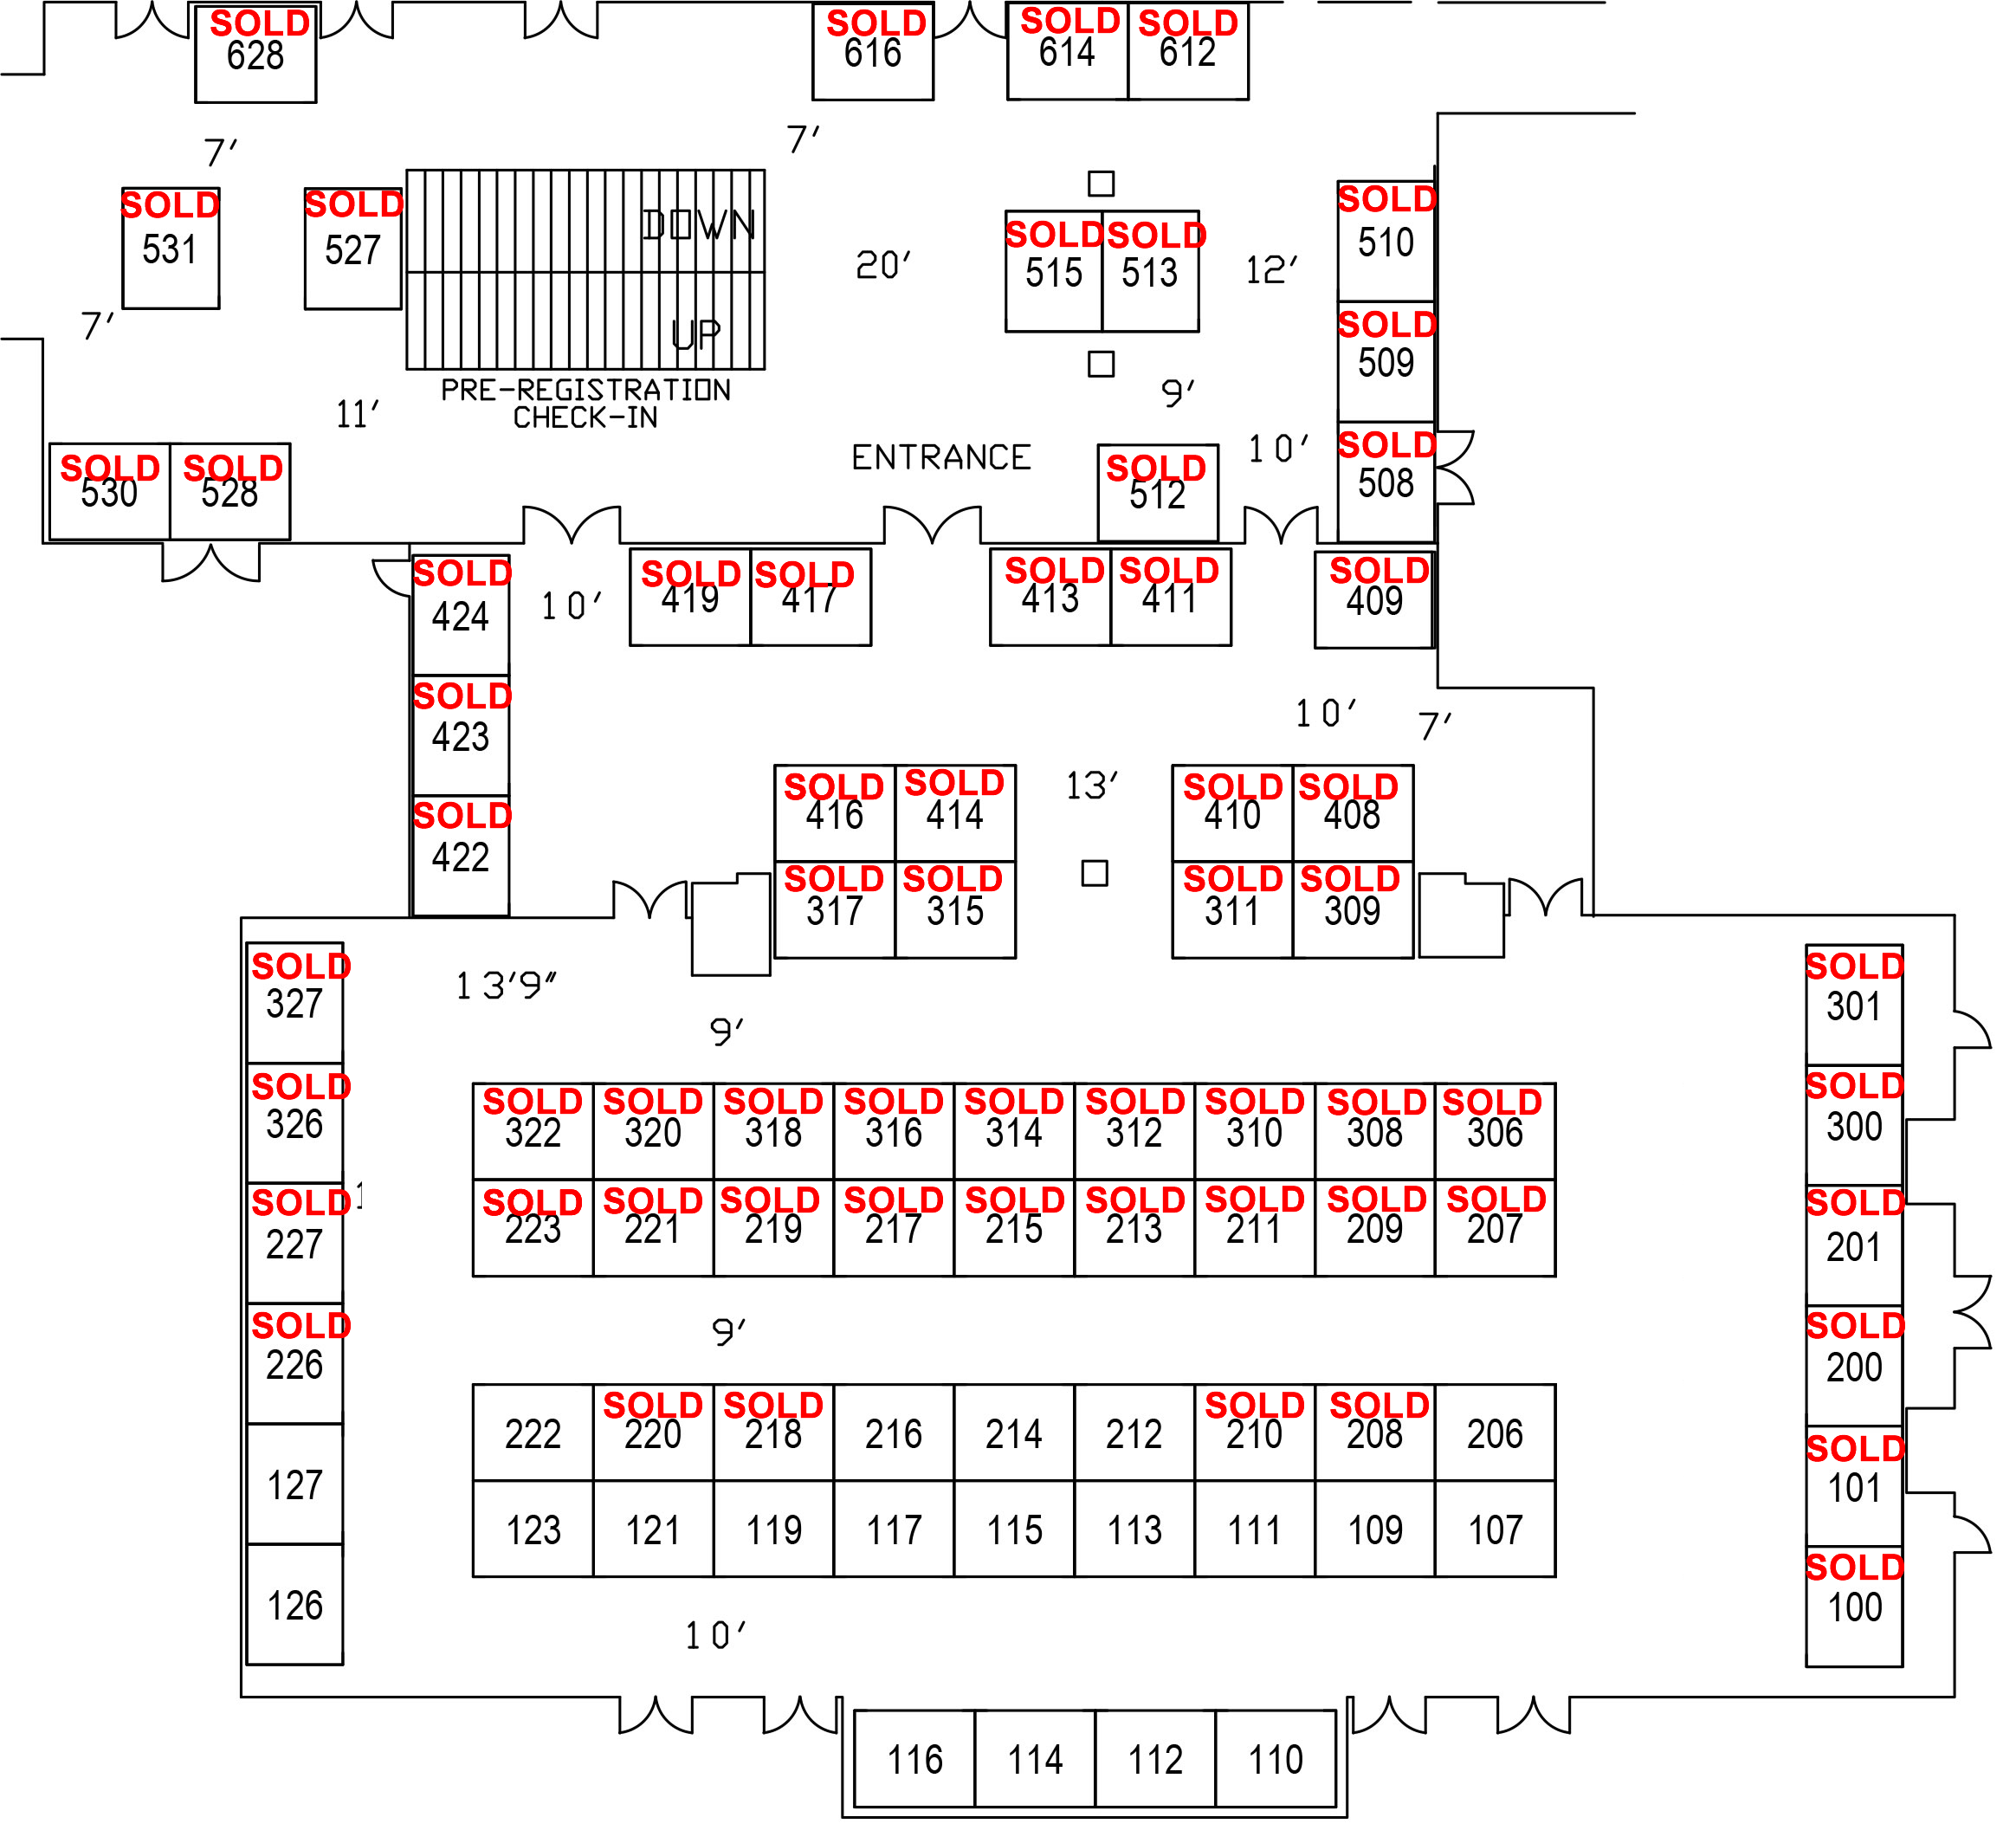 Tahoe Business Expo Floorplan